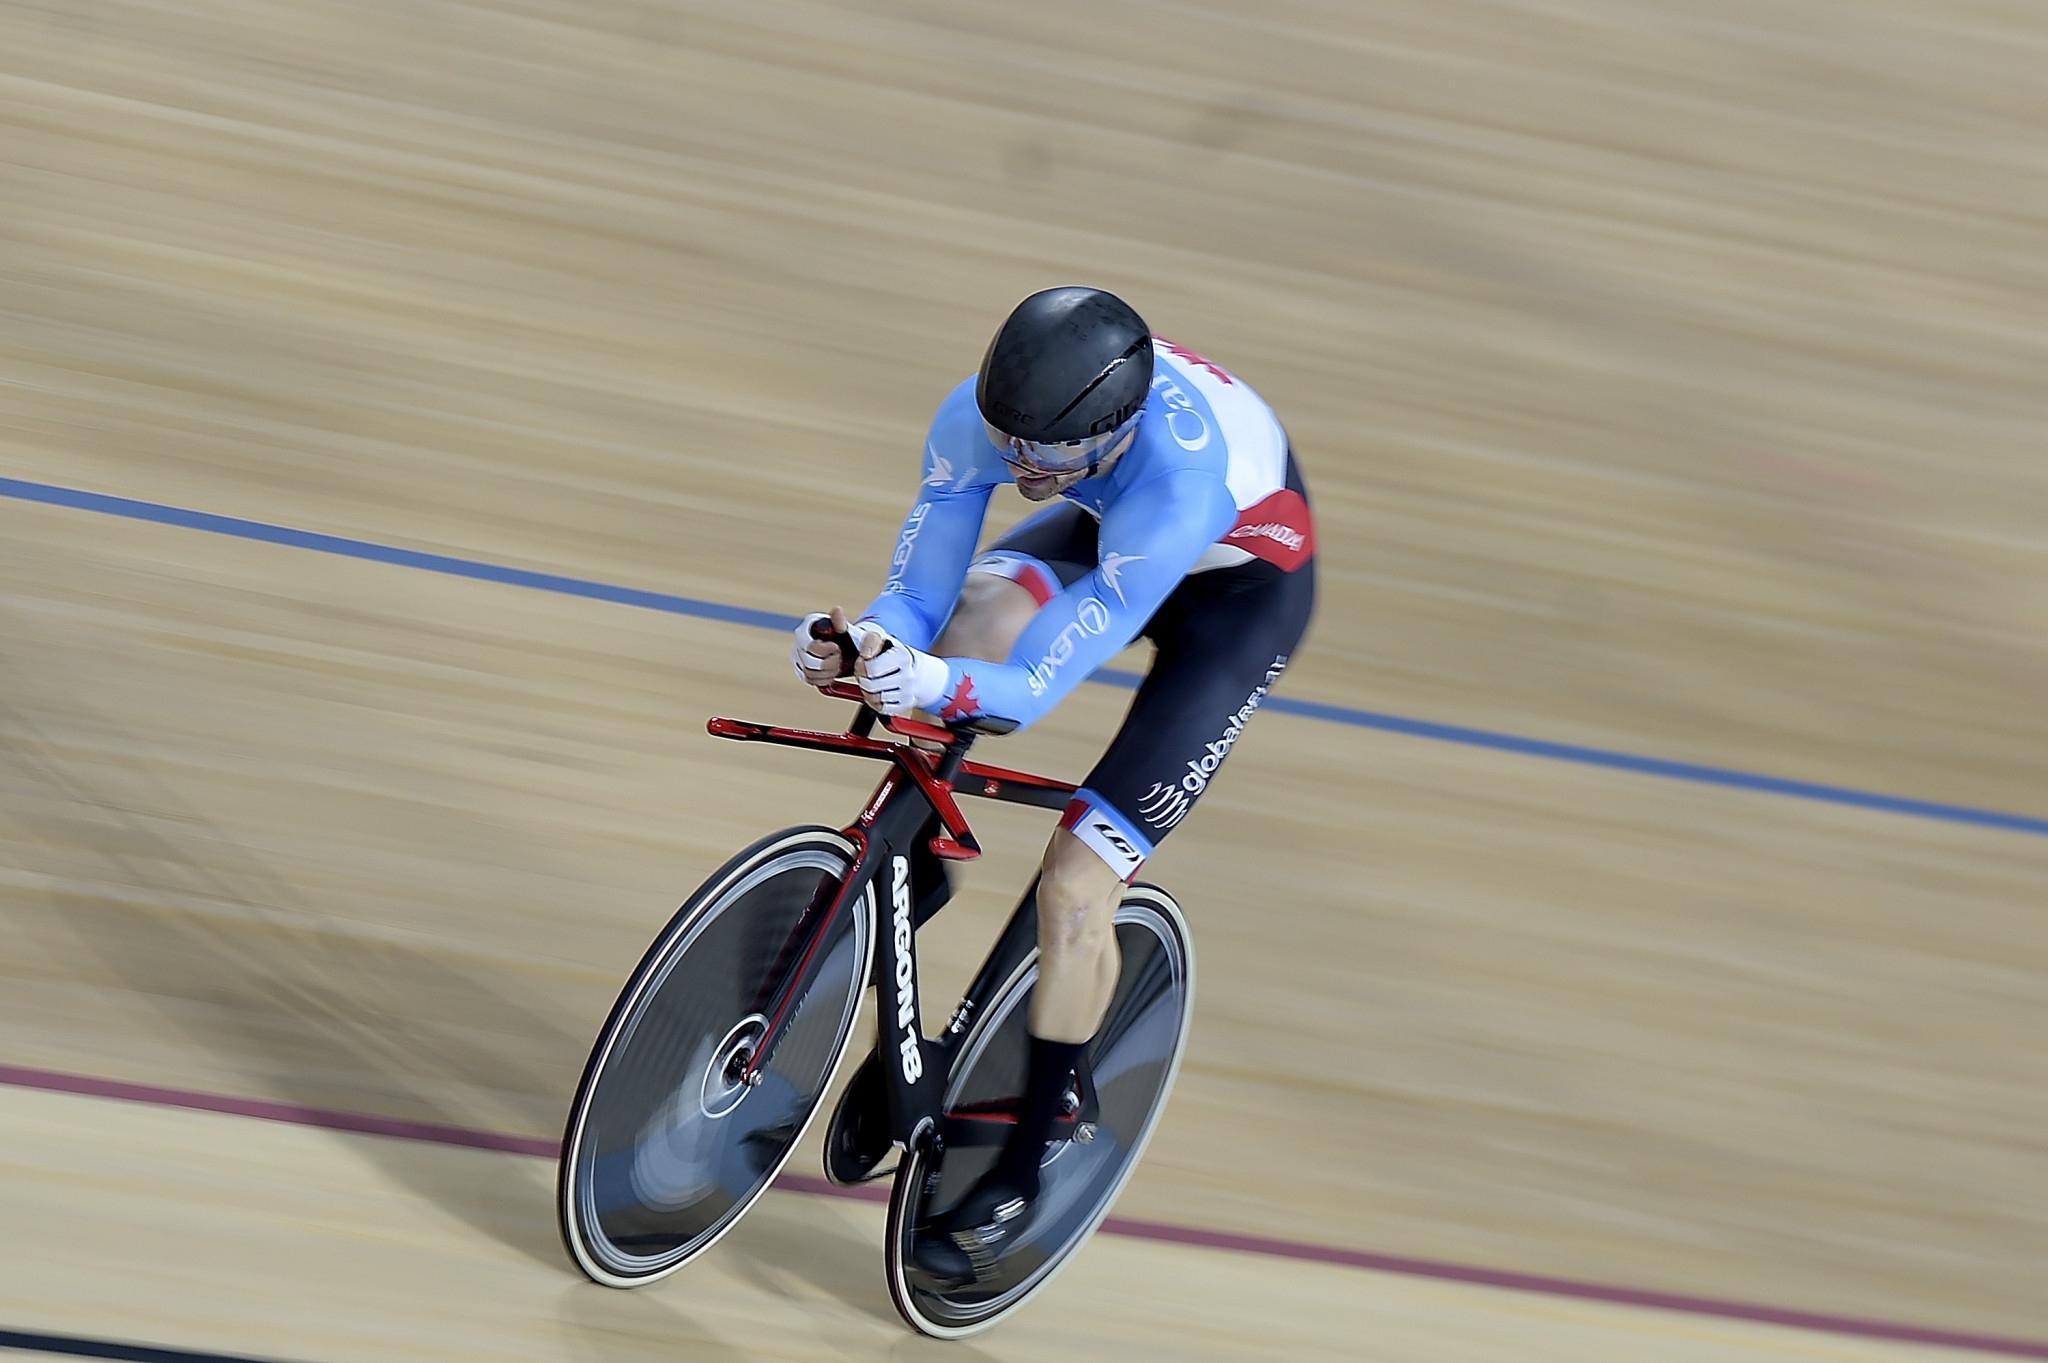 Tristen Chernove has been named the 2018 Canadian Para Cyclist of the Year by the news website Canadian Cyclist ©Getty Images